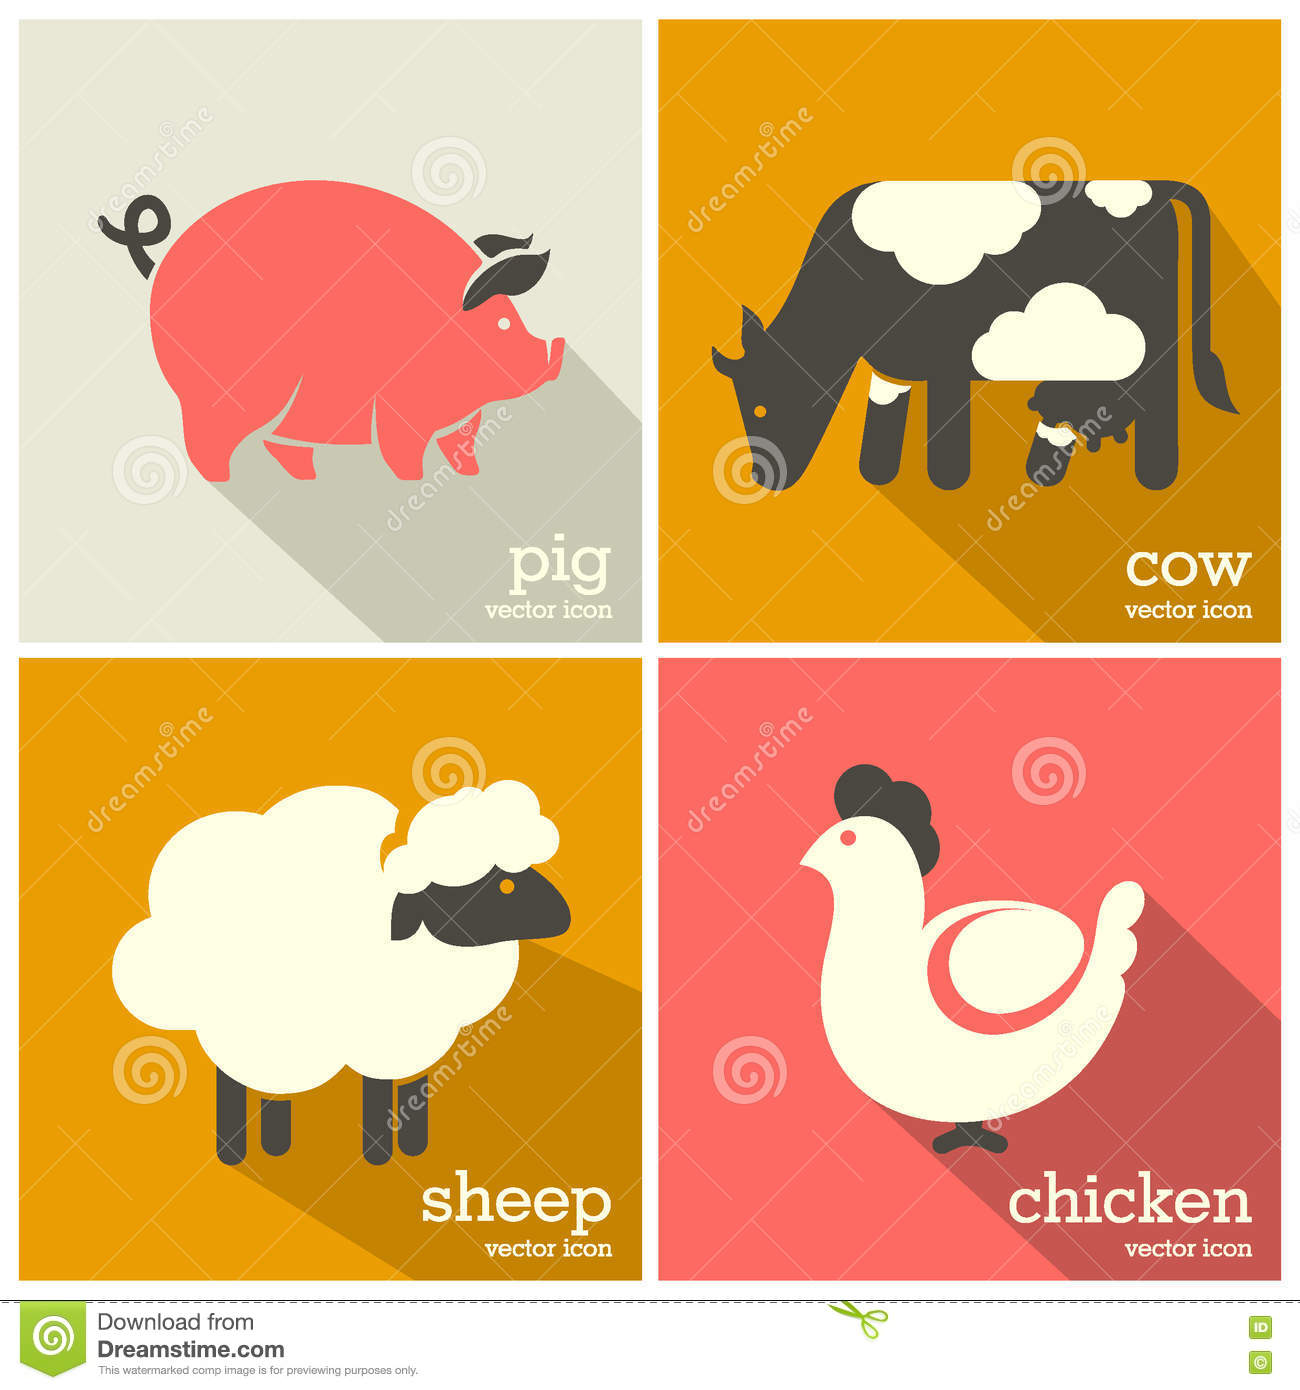 Pig Cards Chicken Cards Farm Animal Cards by Leanin Tree 8920418 ...